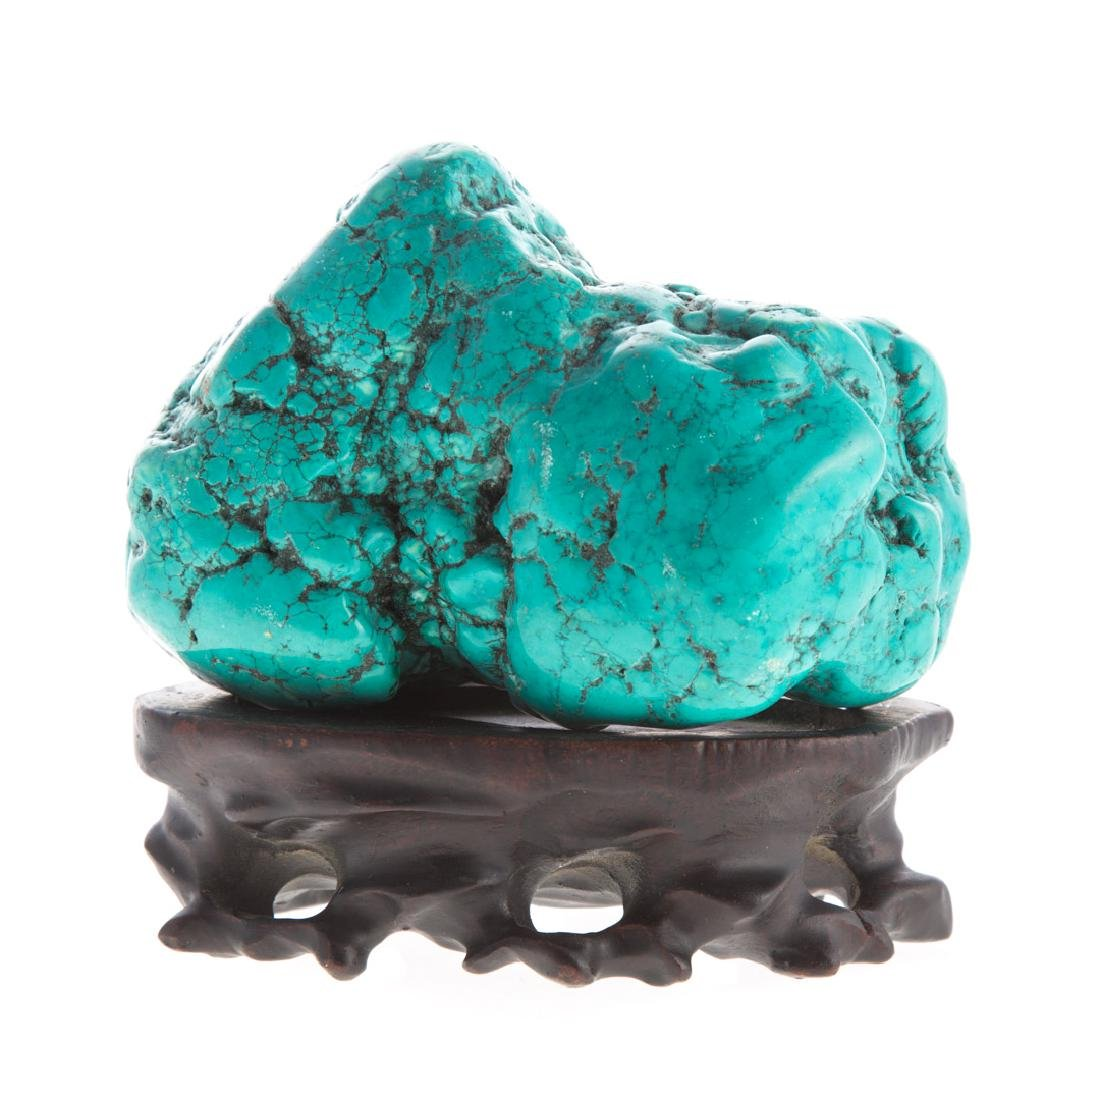 Chinese carved turquoise scholar's stone